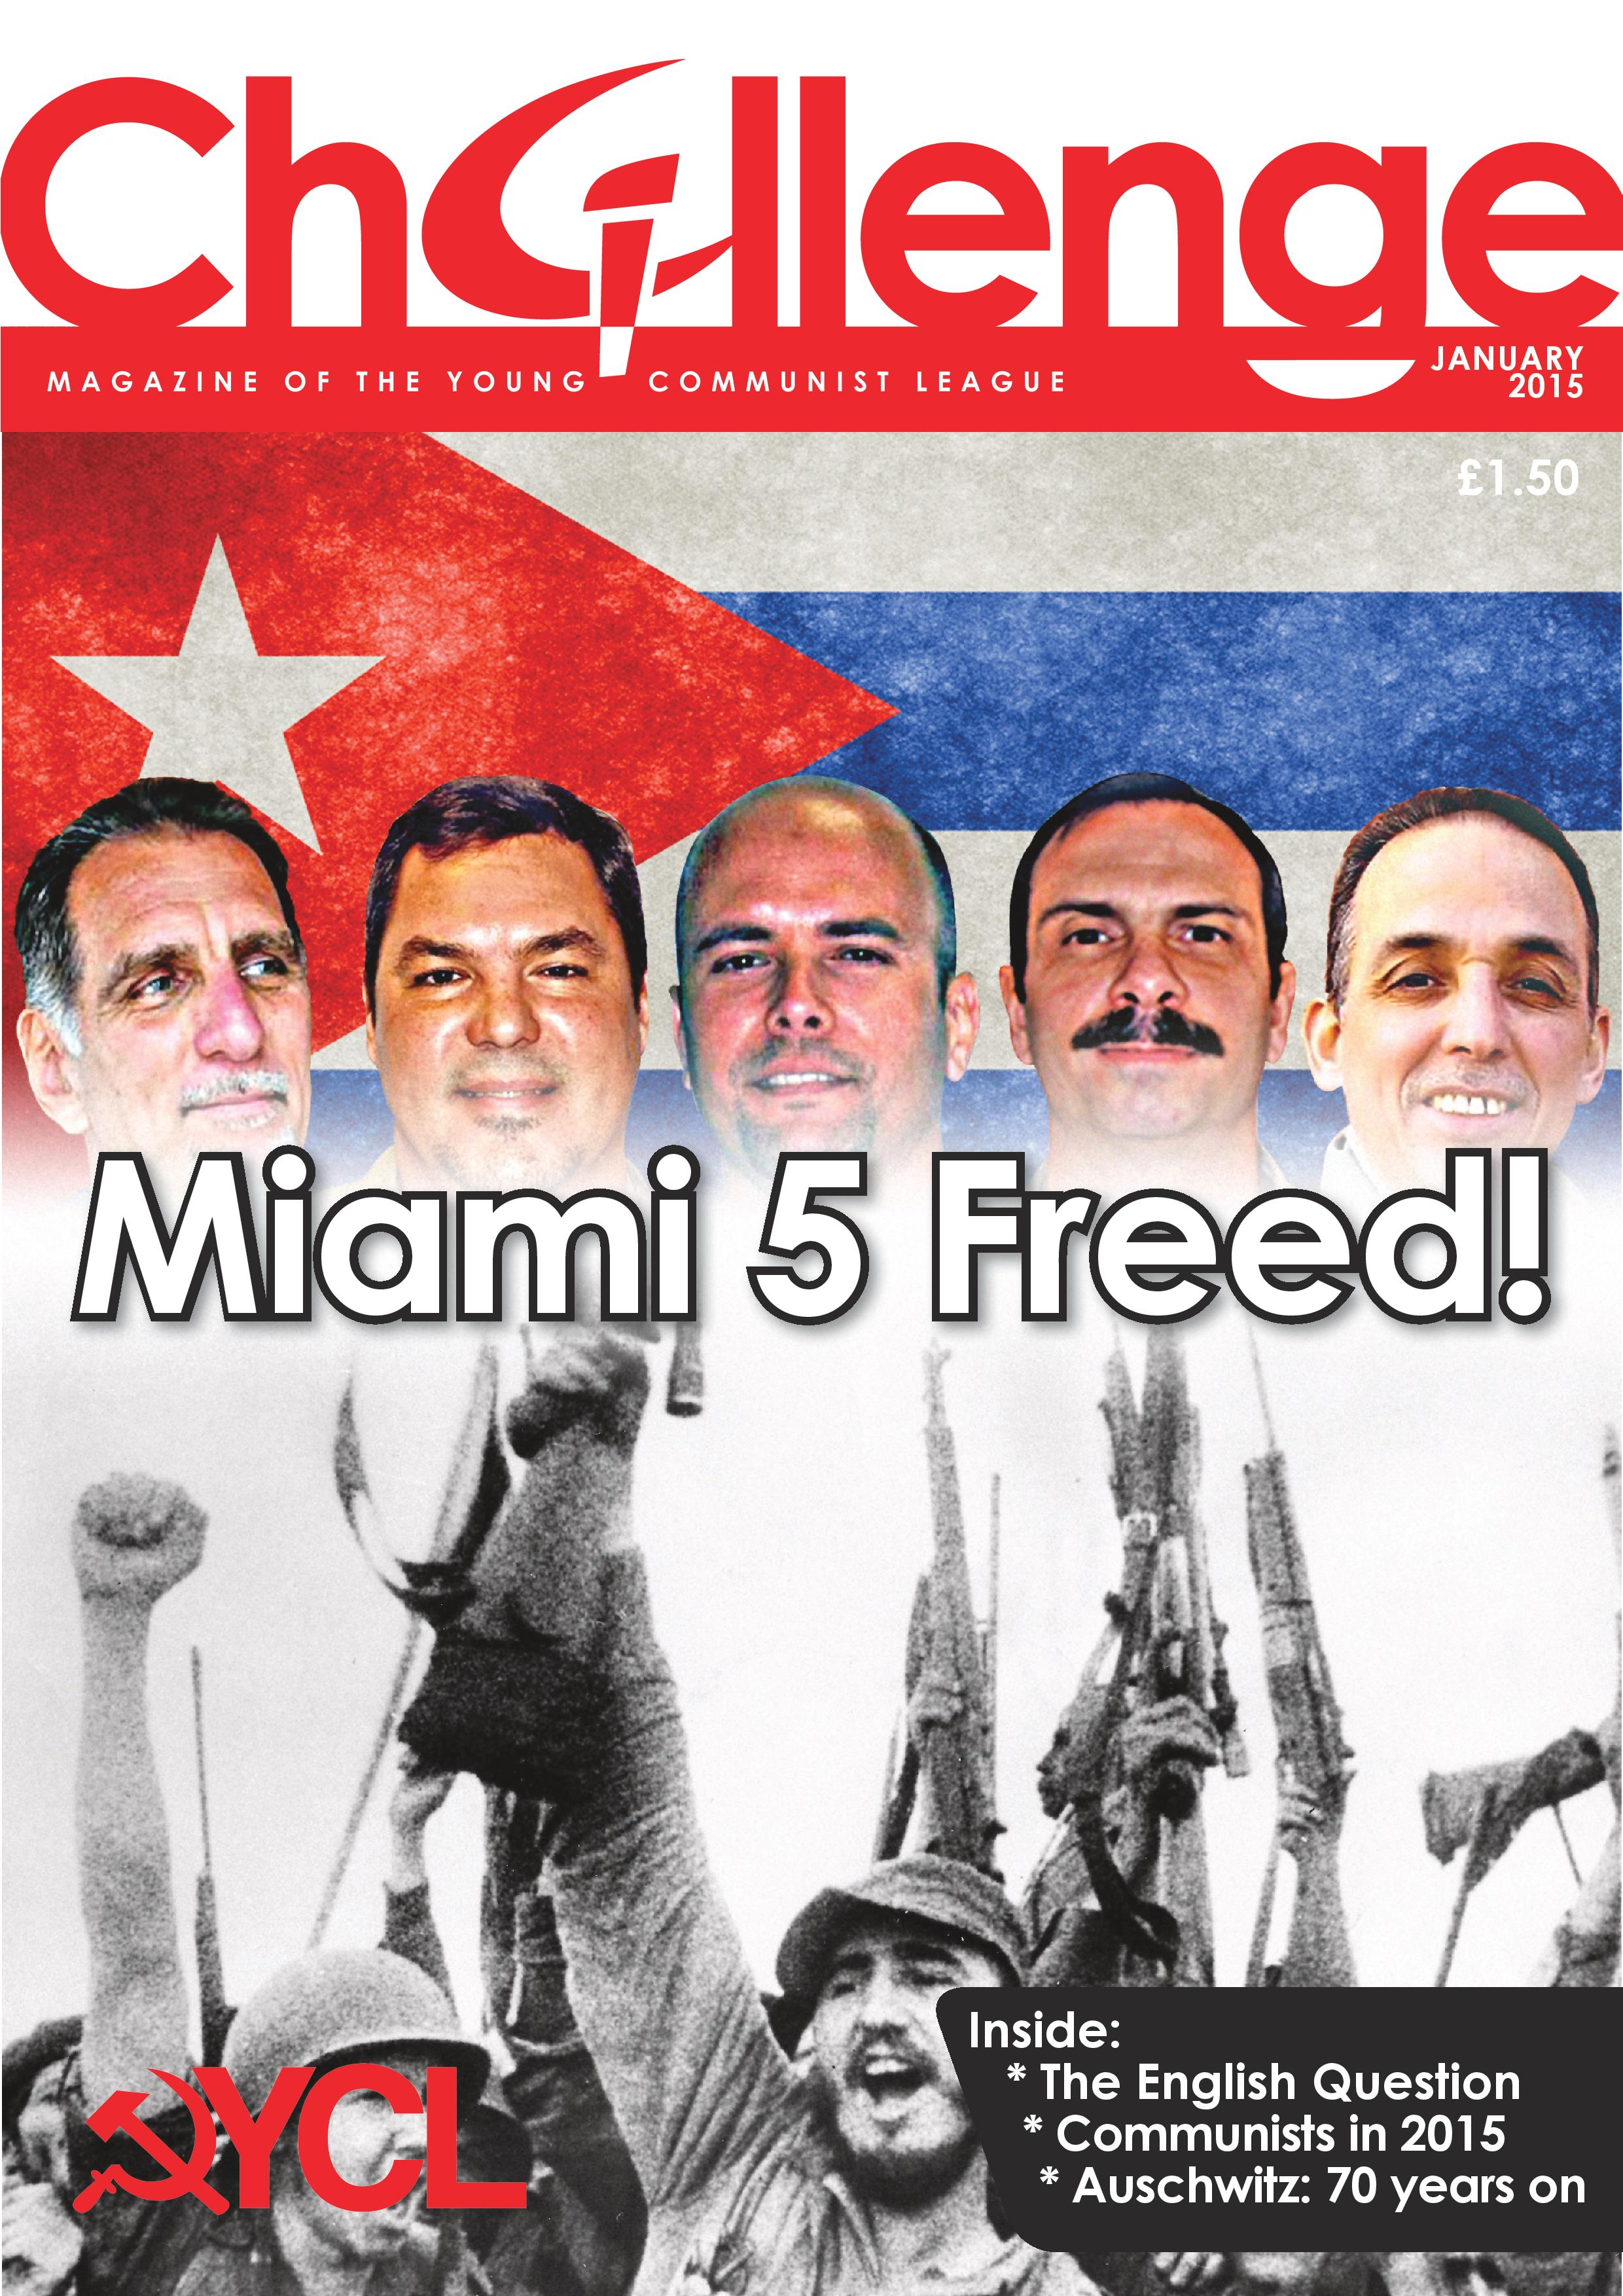 Front Cover: Celebrating the release of the Miami 5!